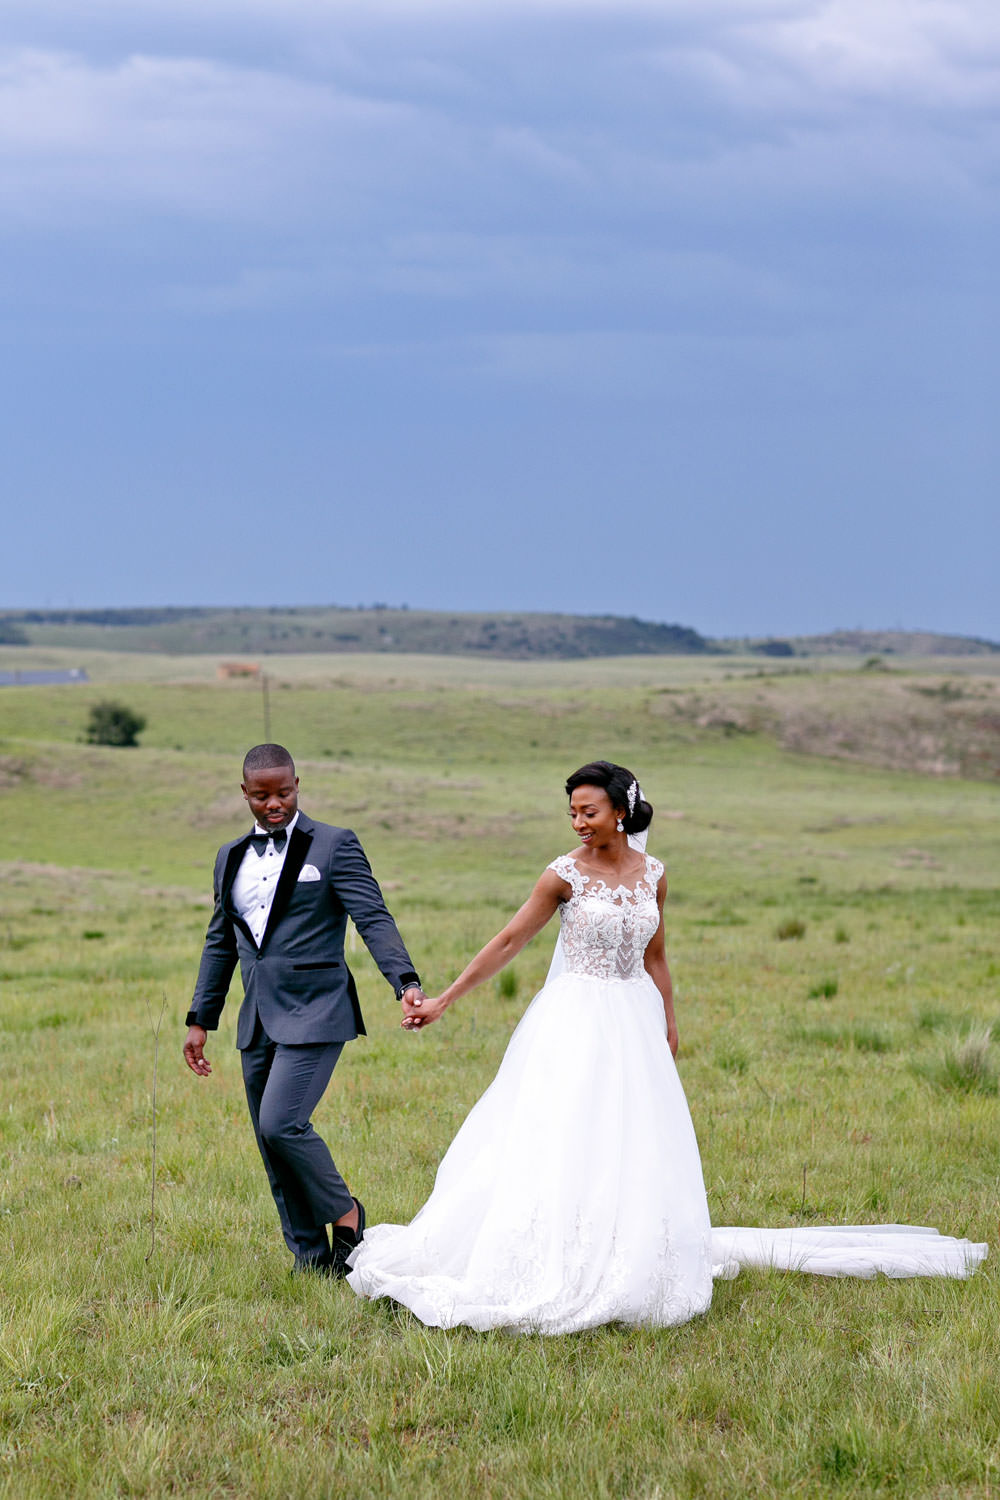 Bride and groom walking in the green grass fields at a wedding venue in Natel